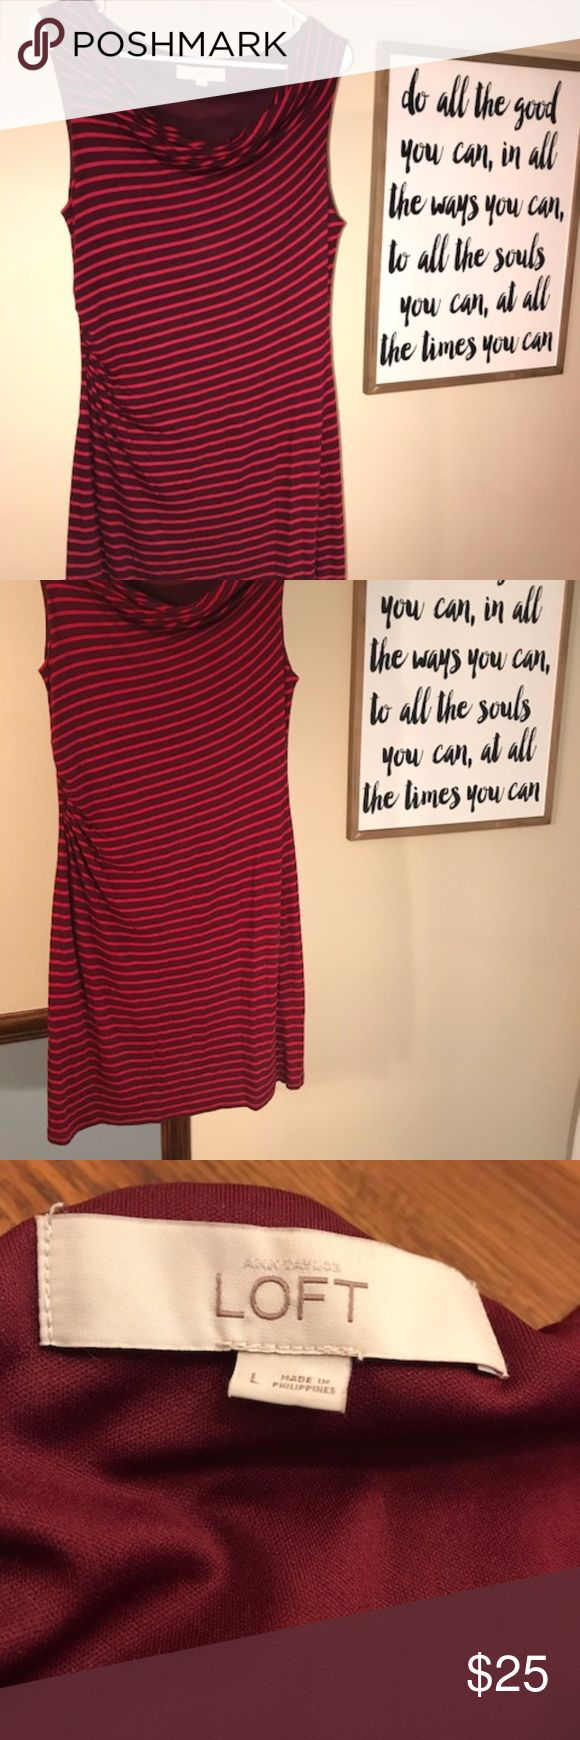 Red Striped LOFT Dress Two-toned red striped dress from the LOFT. Size large, gathered at the right hip. Sleeveless dress with a swooping neckline. Total length from collar to hem is 40 inches. Perfect for layering in the cooler months or wearing on its own when weather is warm! LOFT Dresses